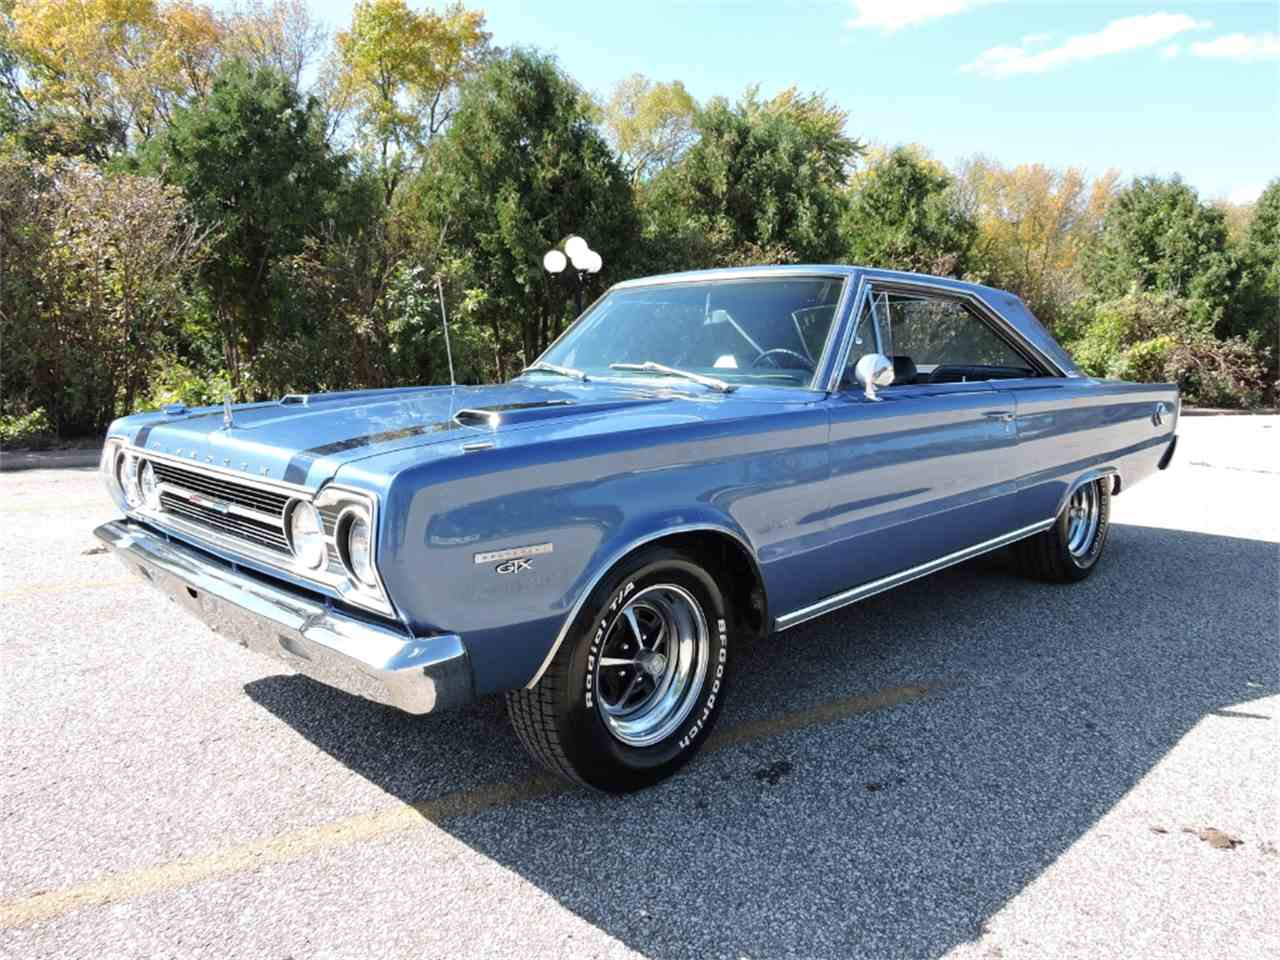 Find Every Shop In The World Selling 1967 Plymouth Gtx At 1960 Hemi Cc909044 Cc1111937 Cc1079163 Cc1108663 Cc1108336 102935 16142